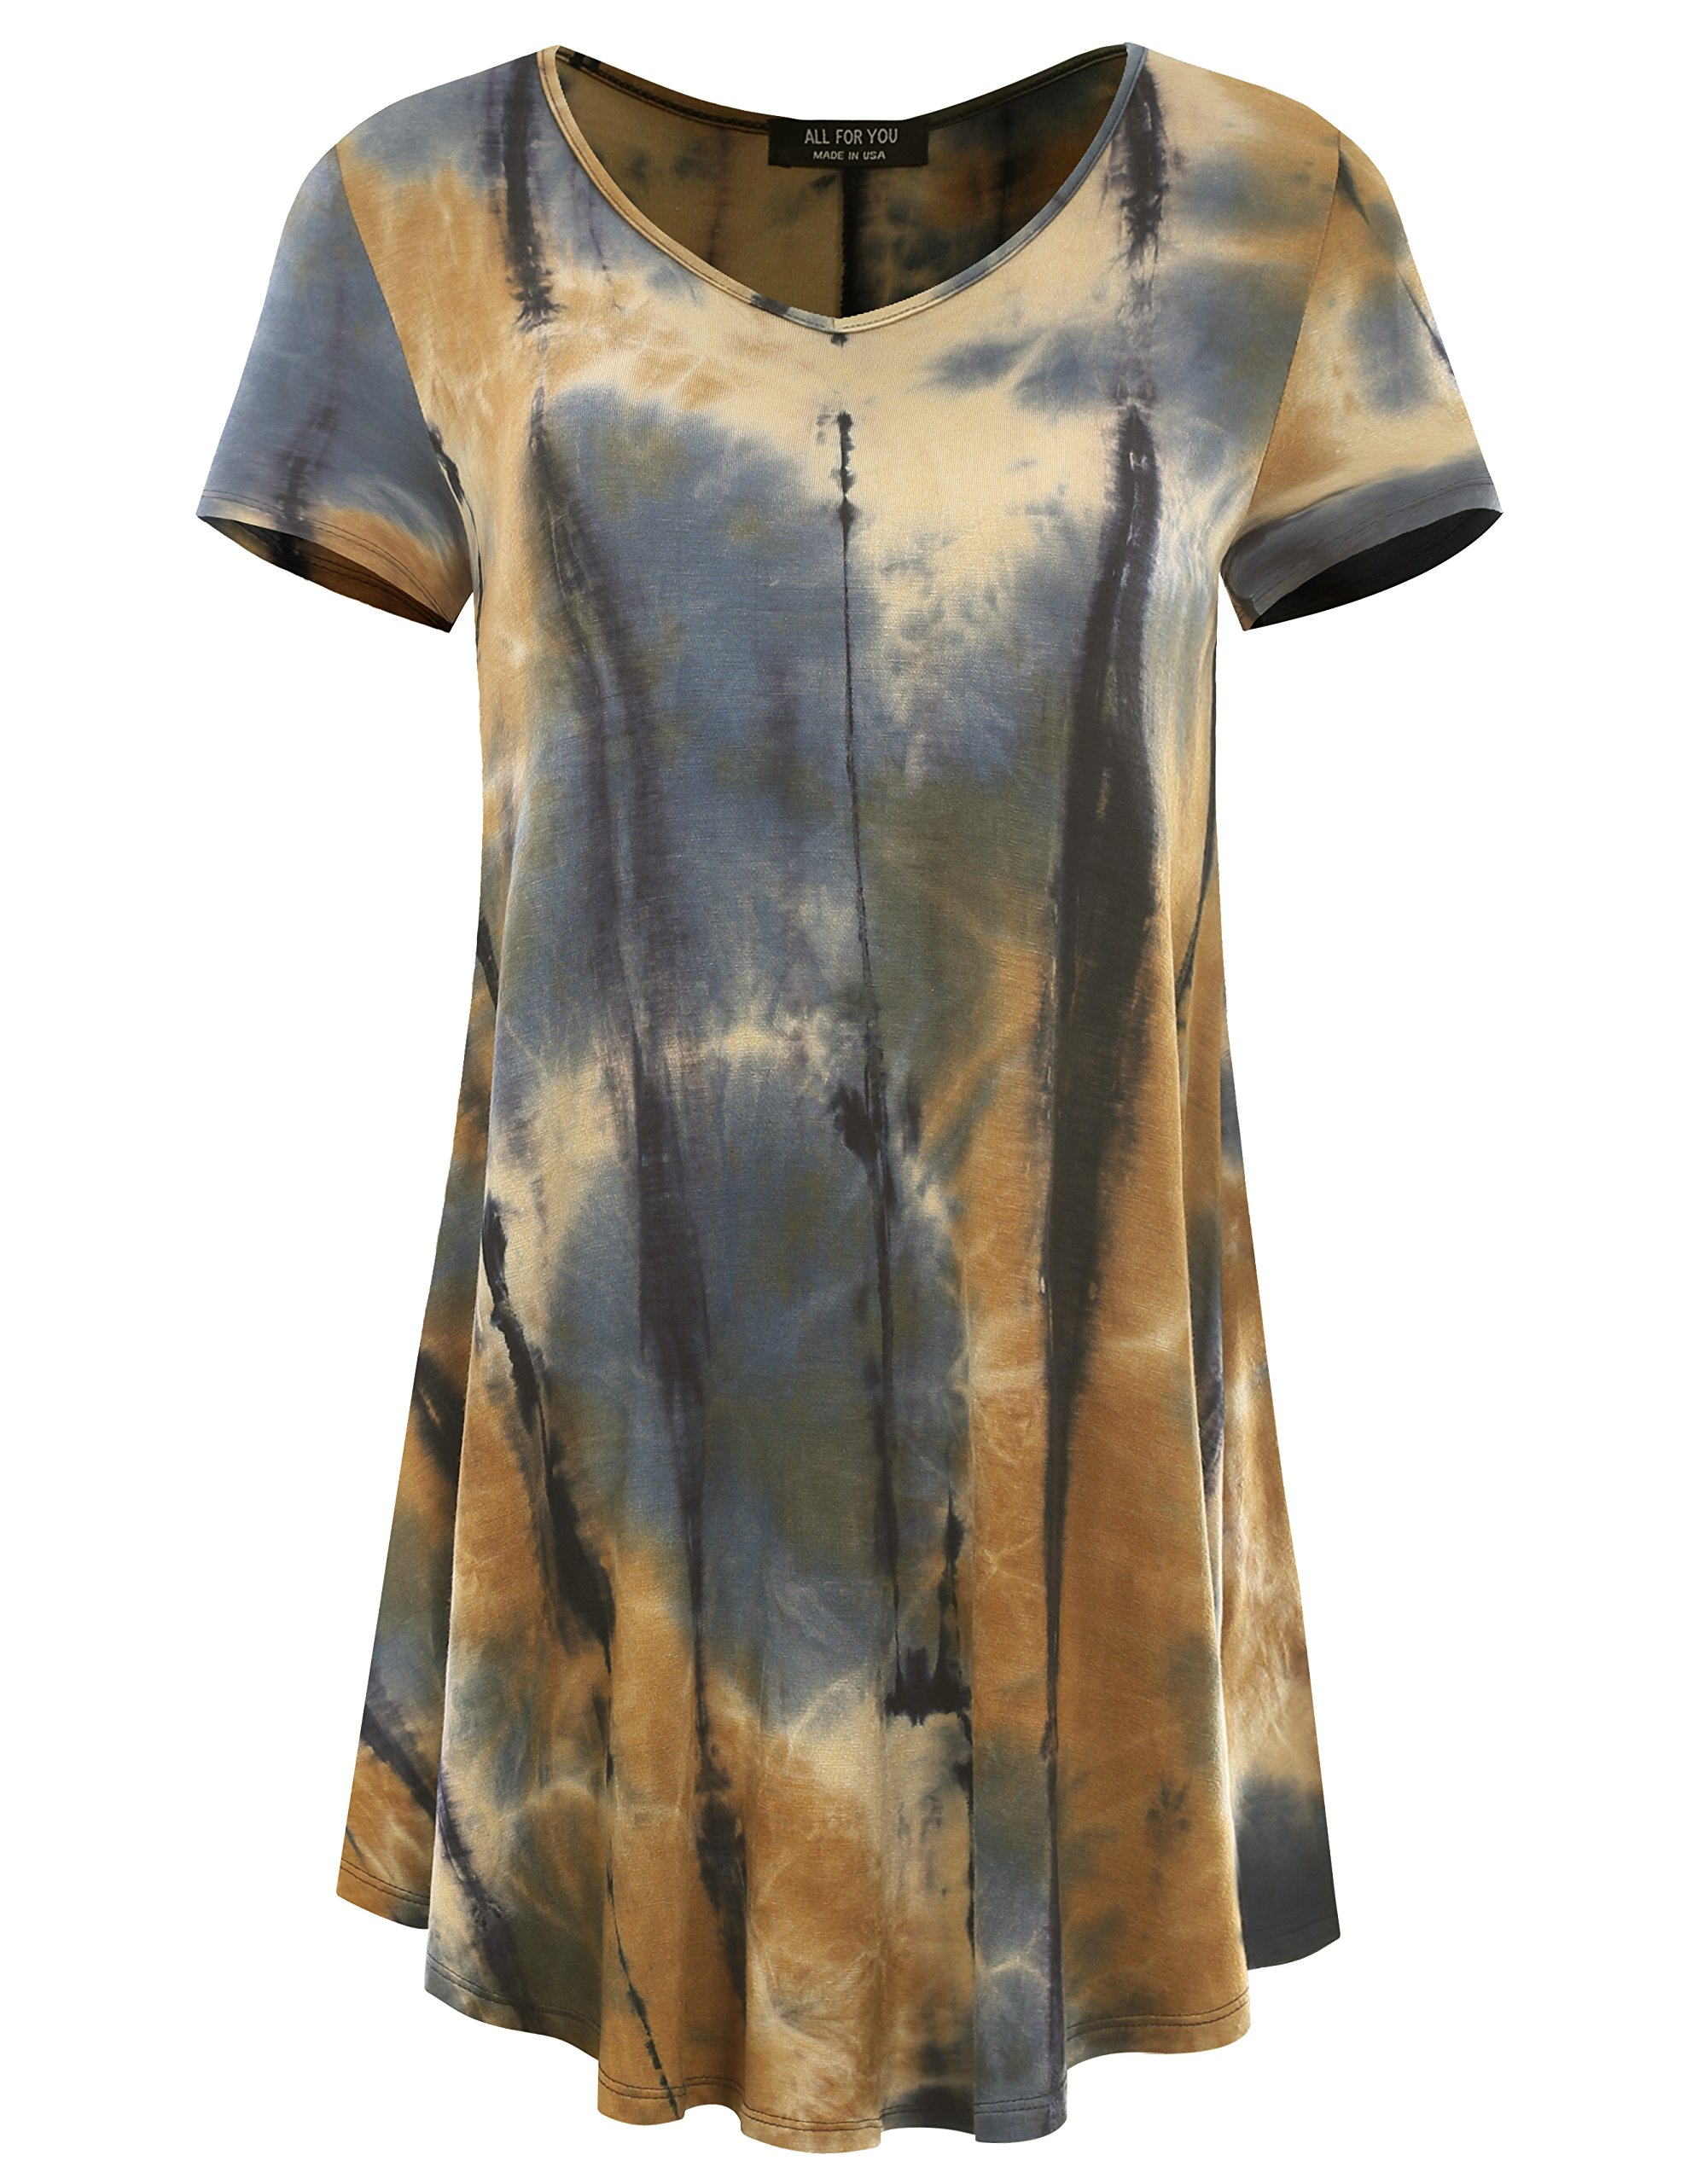 All for You Women's Short Sleeve V-Neck Flare Hem Floral Print Tunic Tie-Dye Taupe 2 X-Large